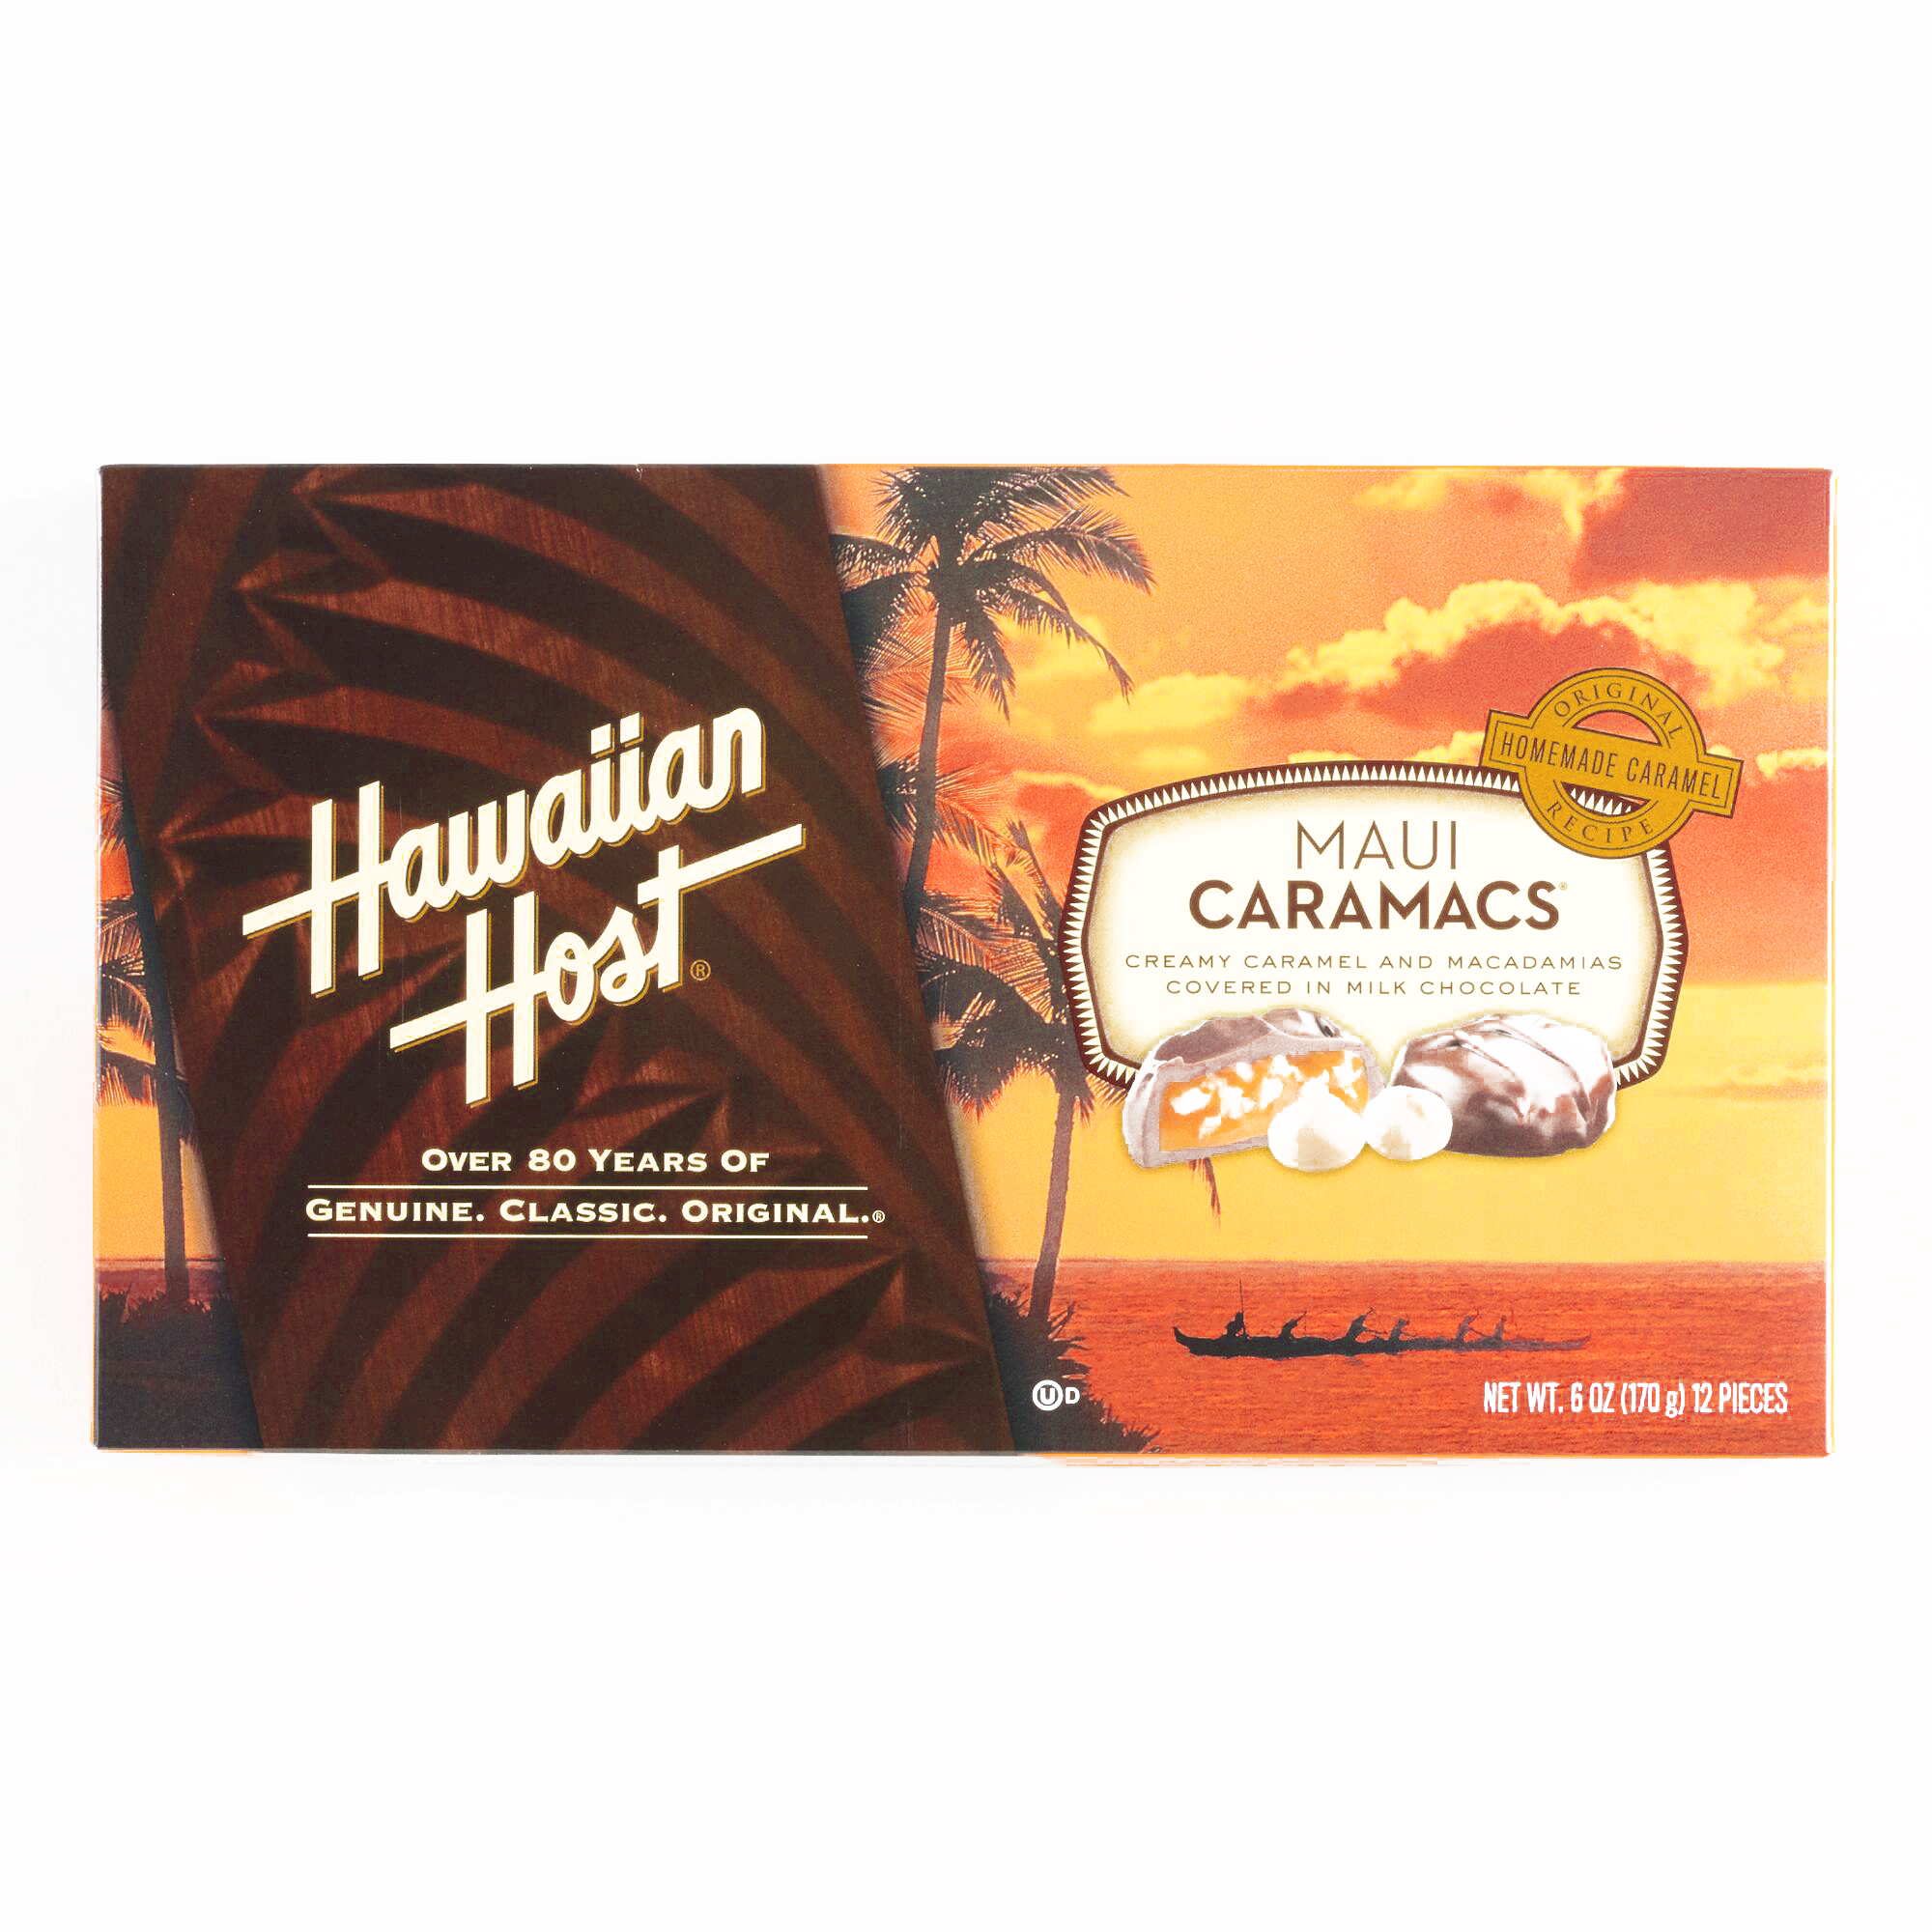 Hawaiian Host Maui Caramacs Box  6 oz each (6 Items Per O...